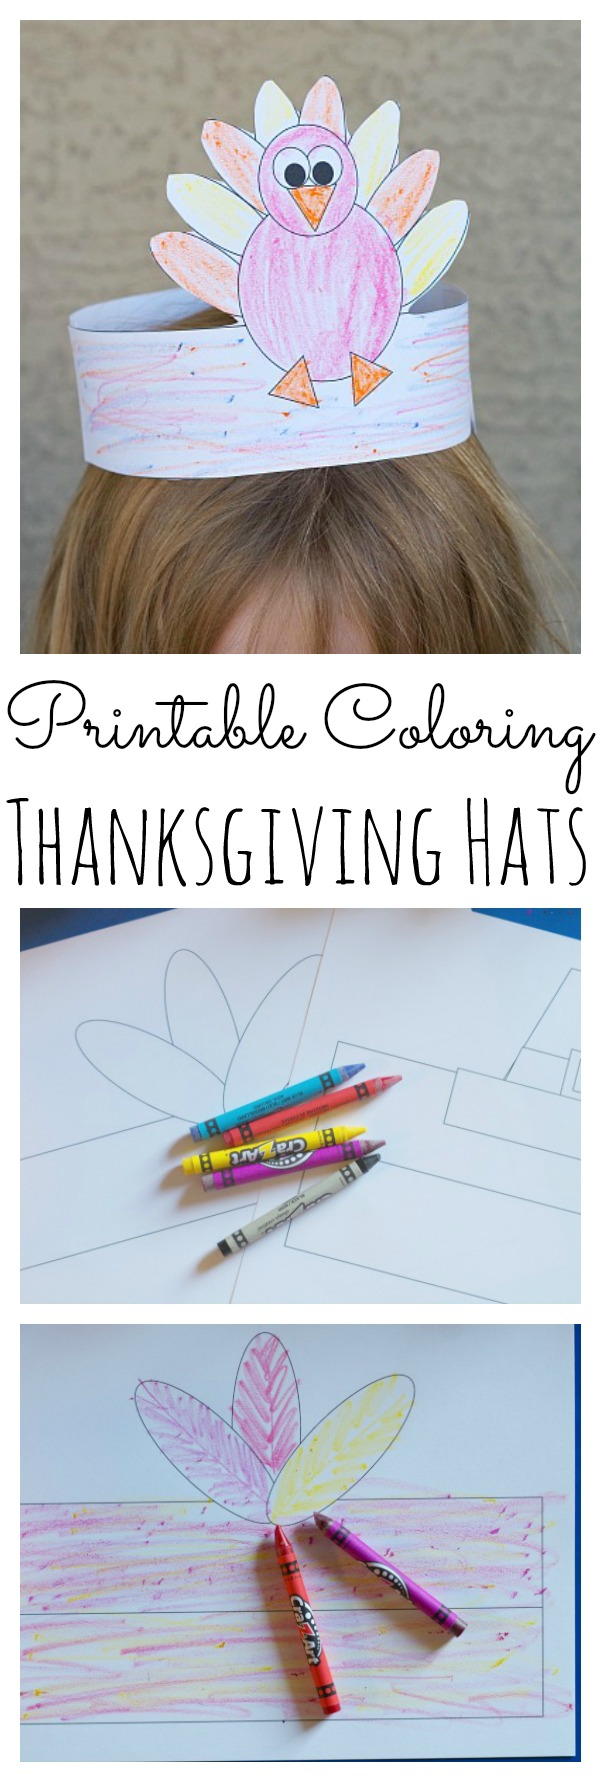 Printable Coloring Thanksgiving Hats